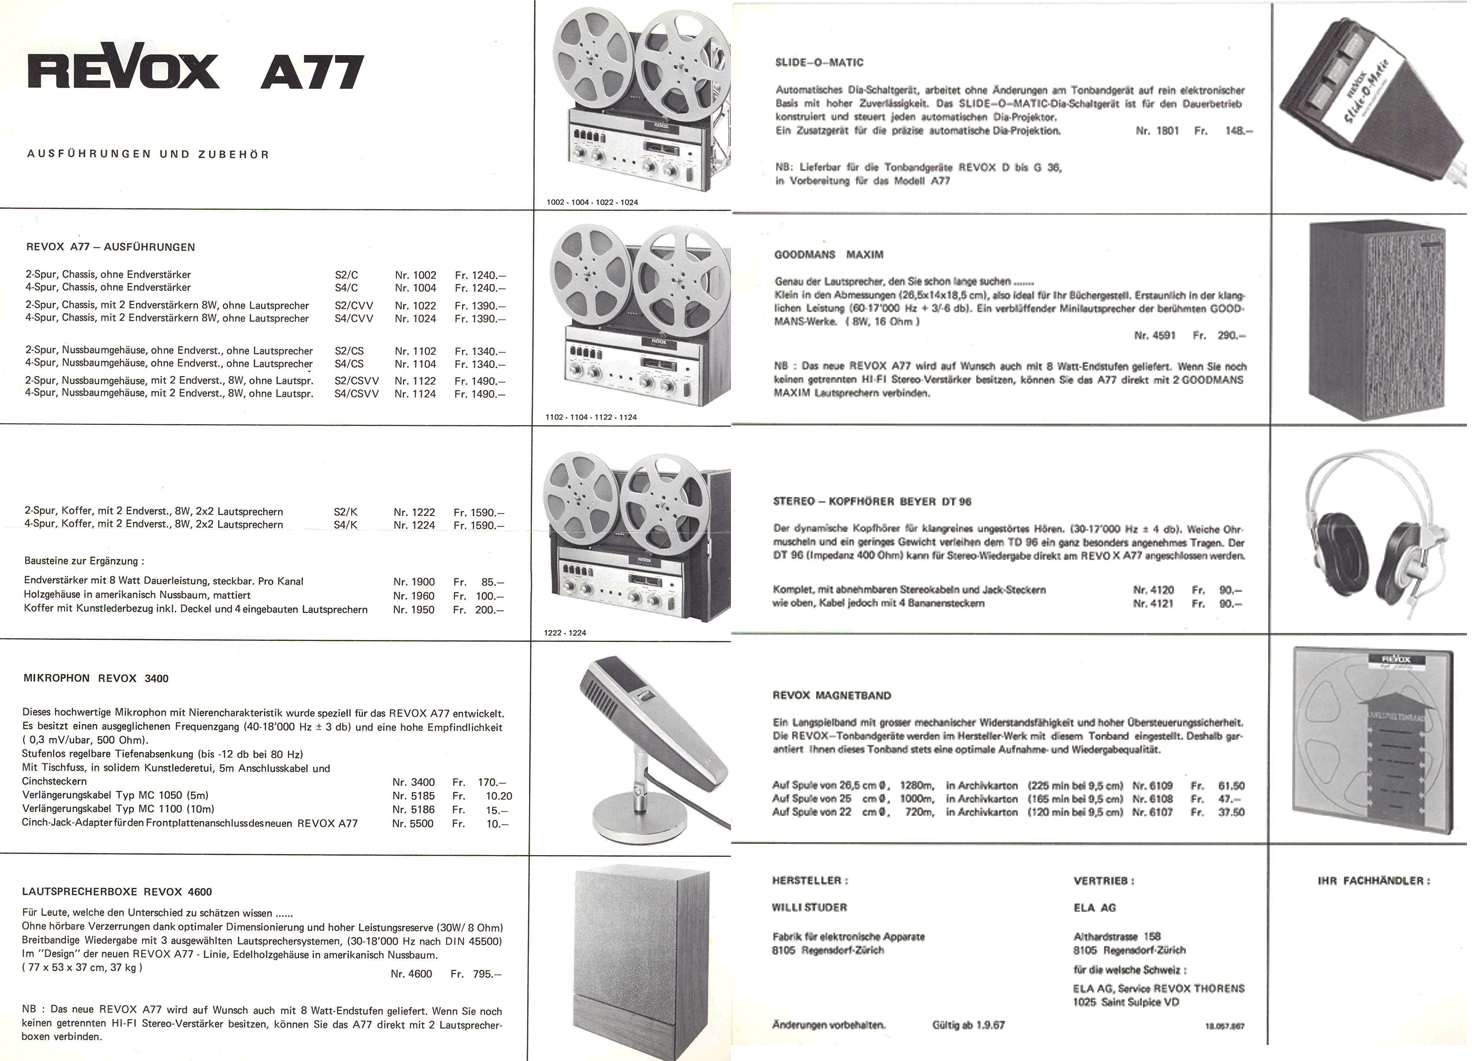 1967 ReVox brochure featuring the A77 in German